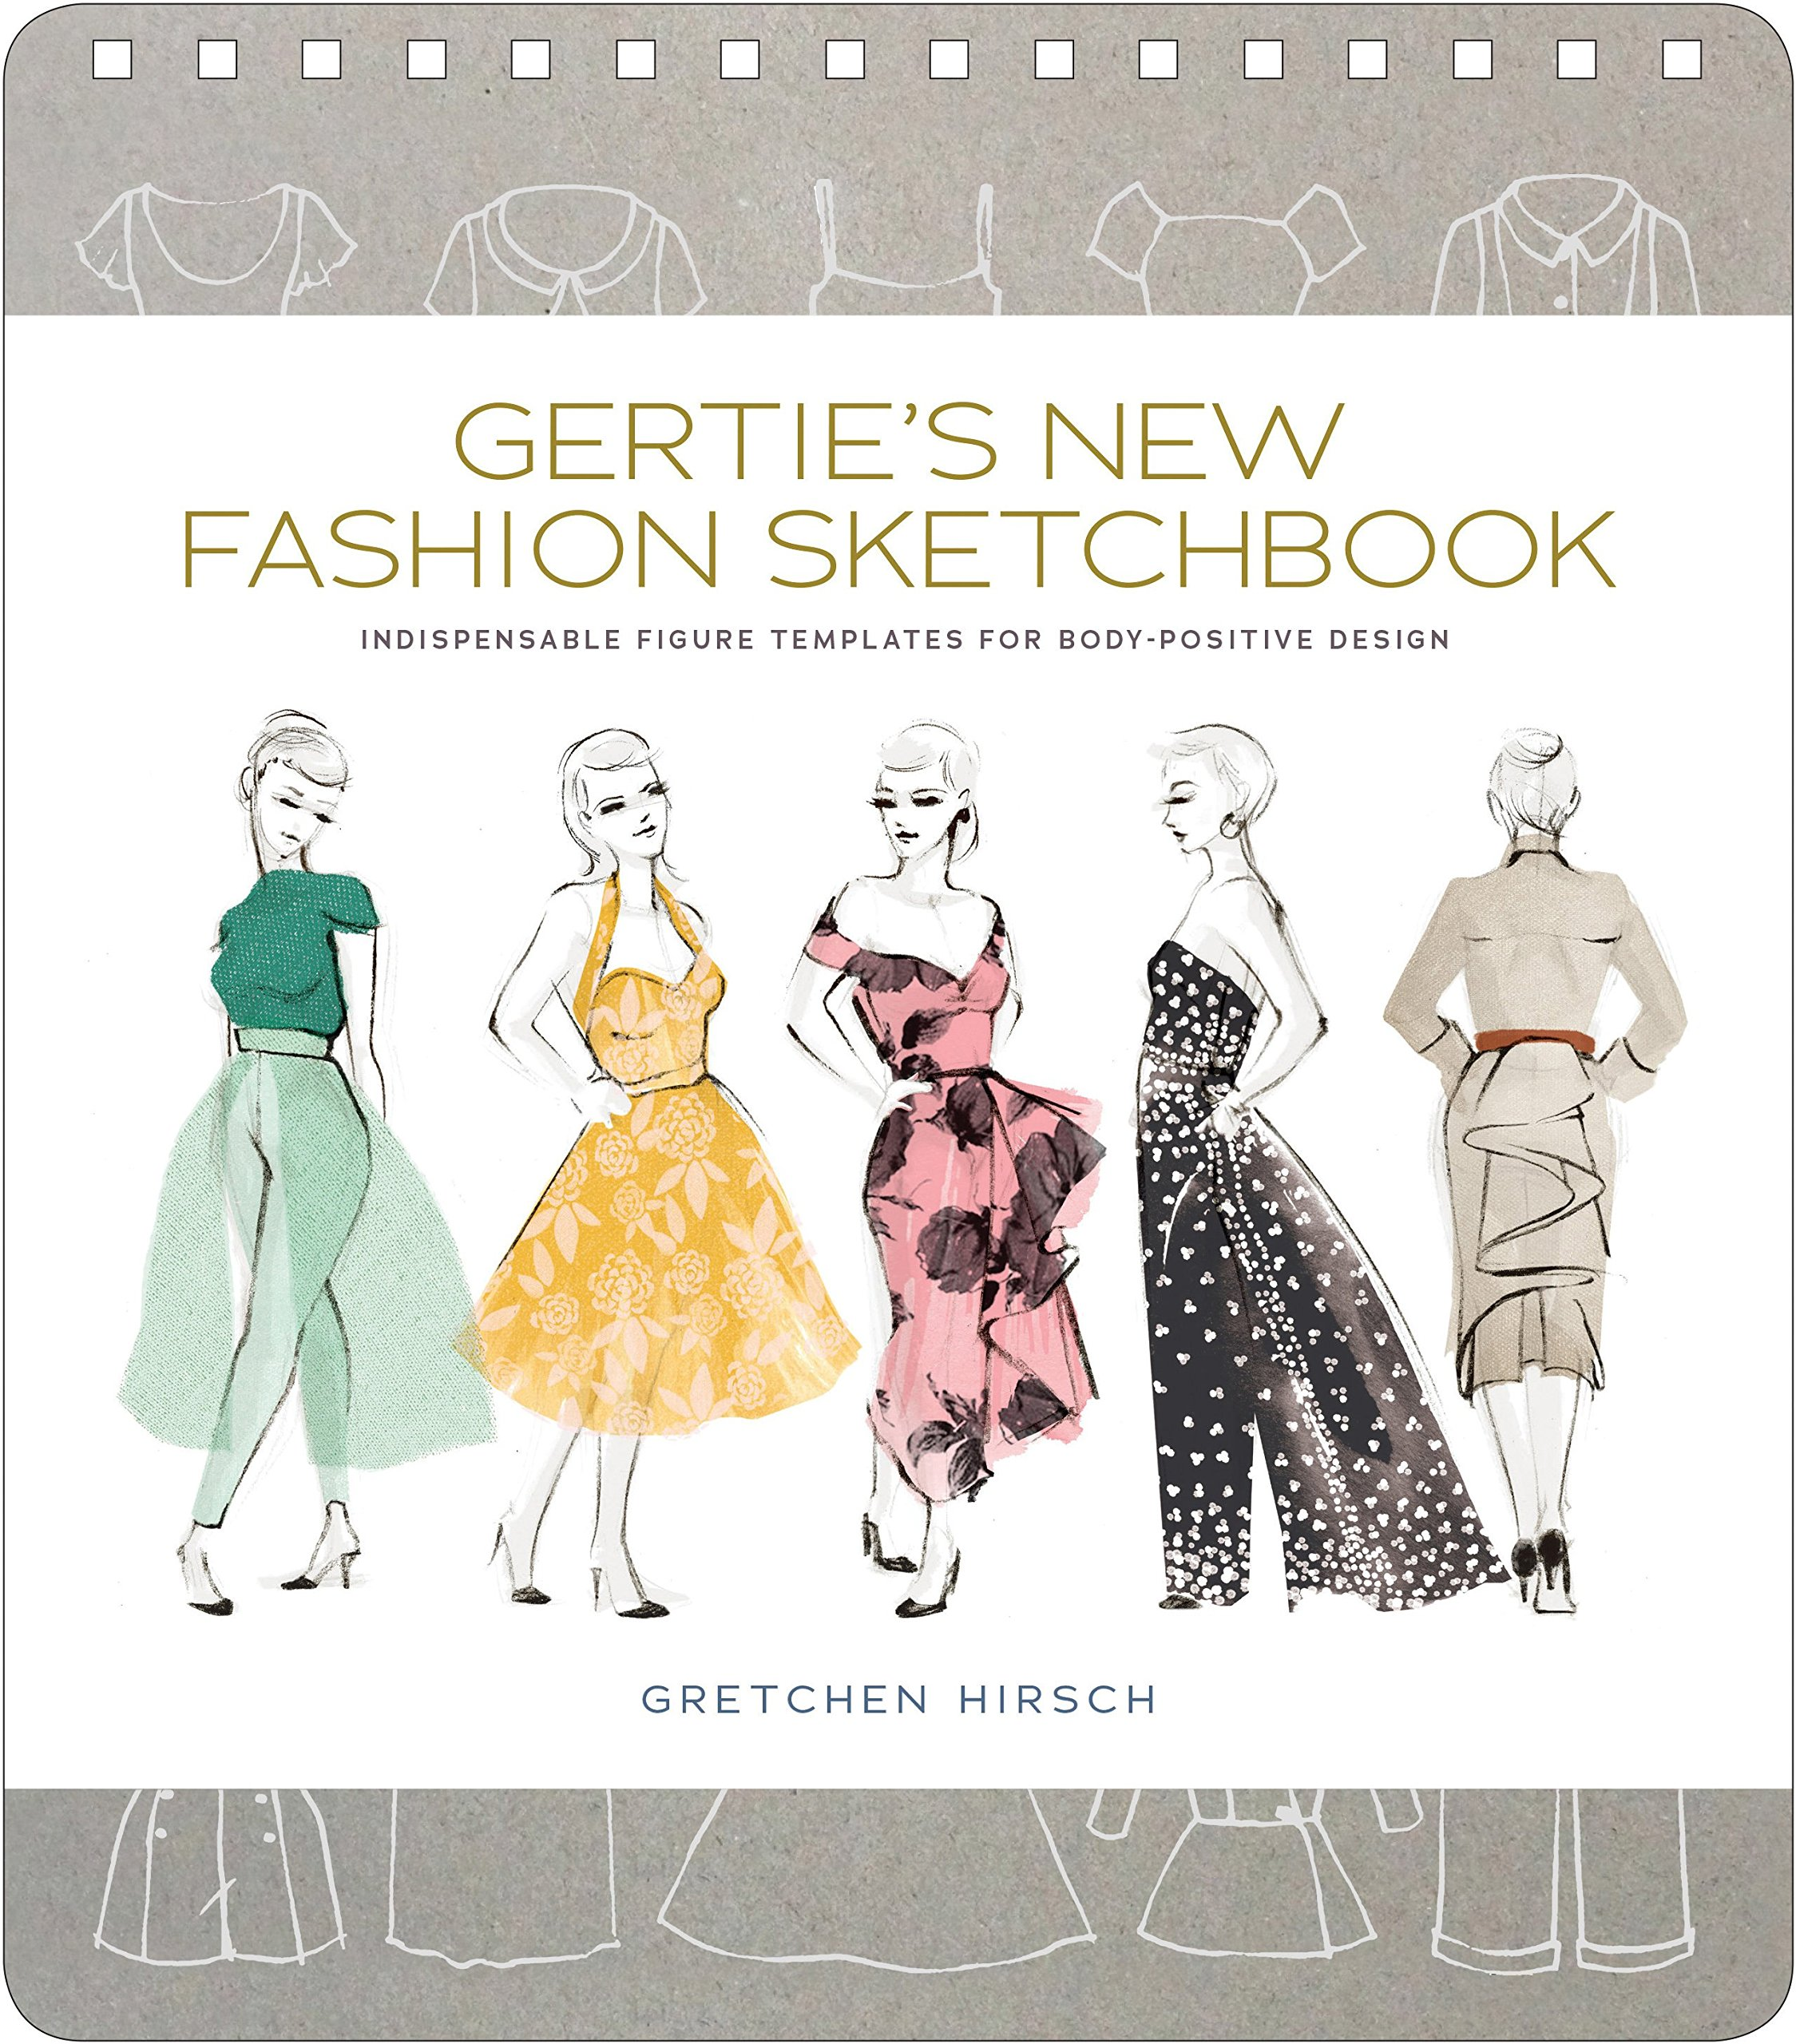 Gertie's New Fashion Sketchbook: Indispensable Figure Templates for  Body-Positive Design (Gertie's Sewing): Gretchen Hirsch, Sun Young Park:  9781617691737: ...